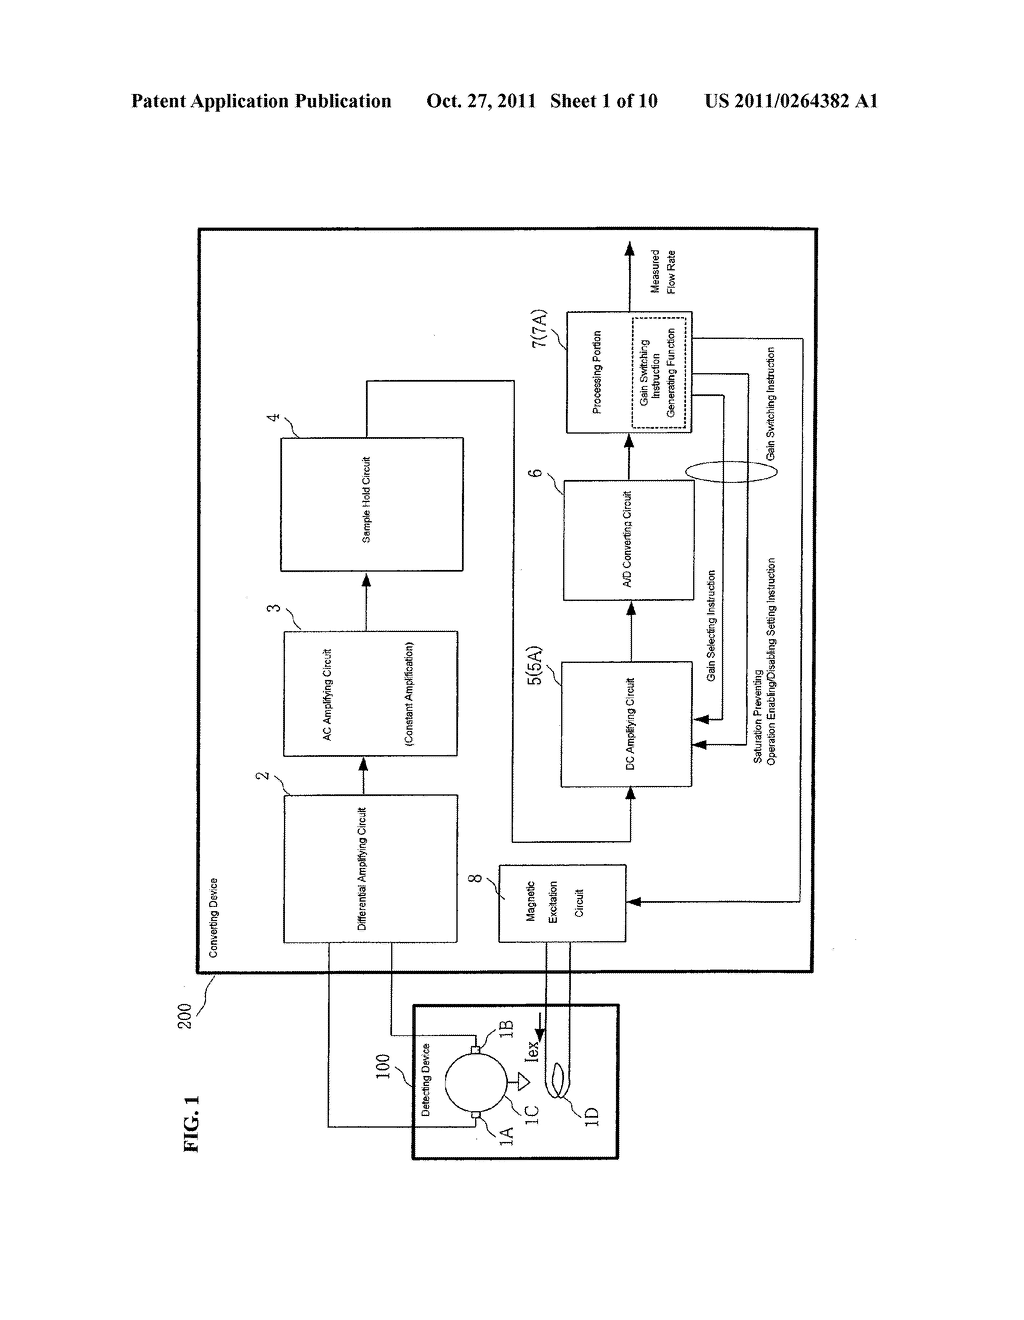 Electromagnetic Flow Meter Schematic Trusted Wiring Diagrams A Circuit Diagram Of An Electromagnet And Image 02 Monitor